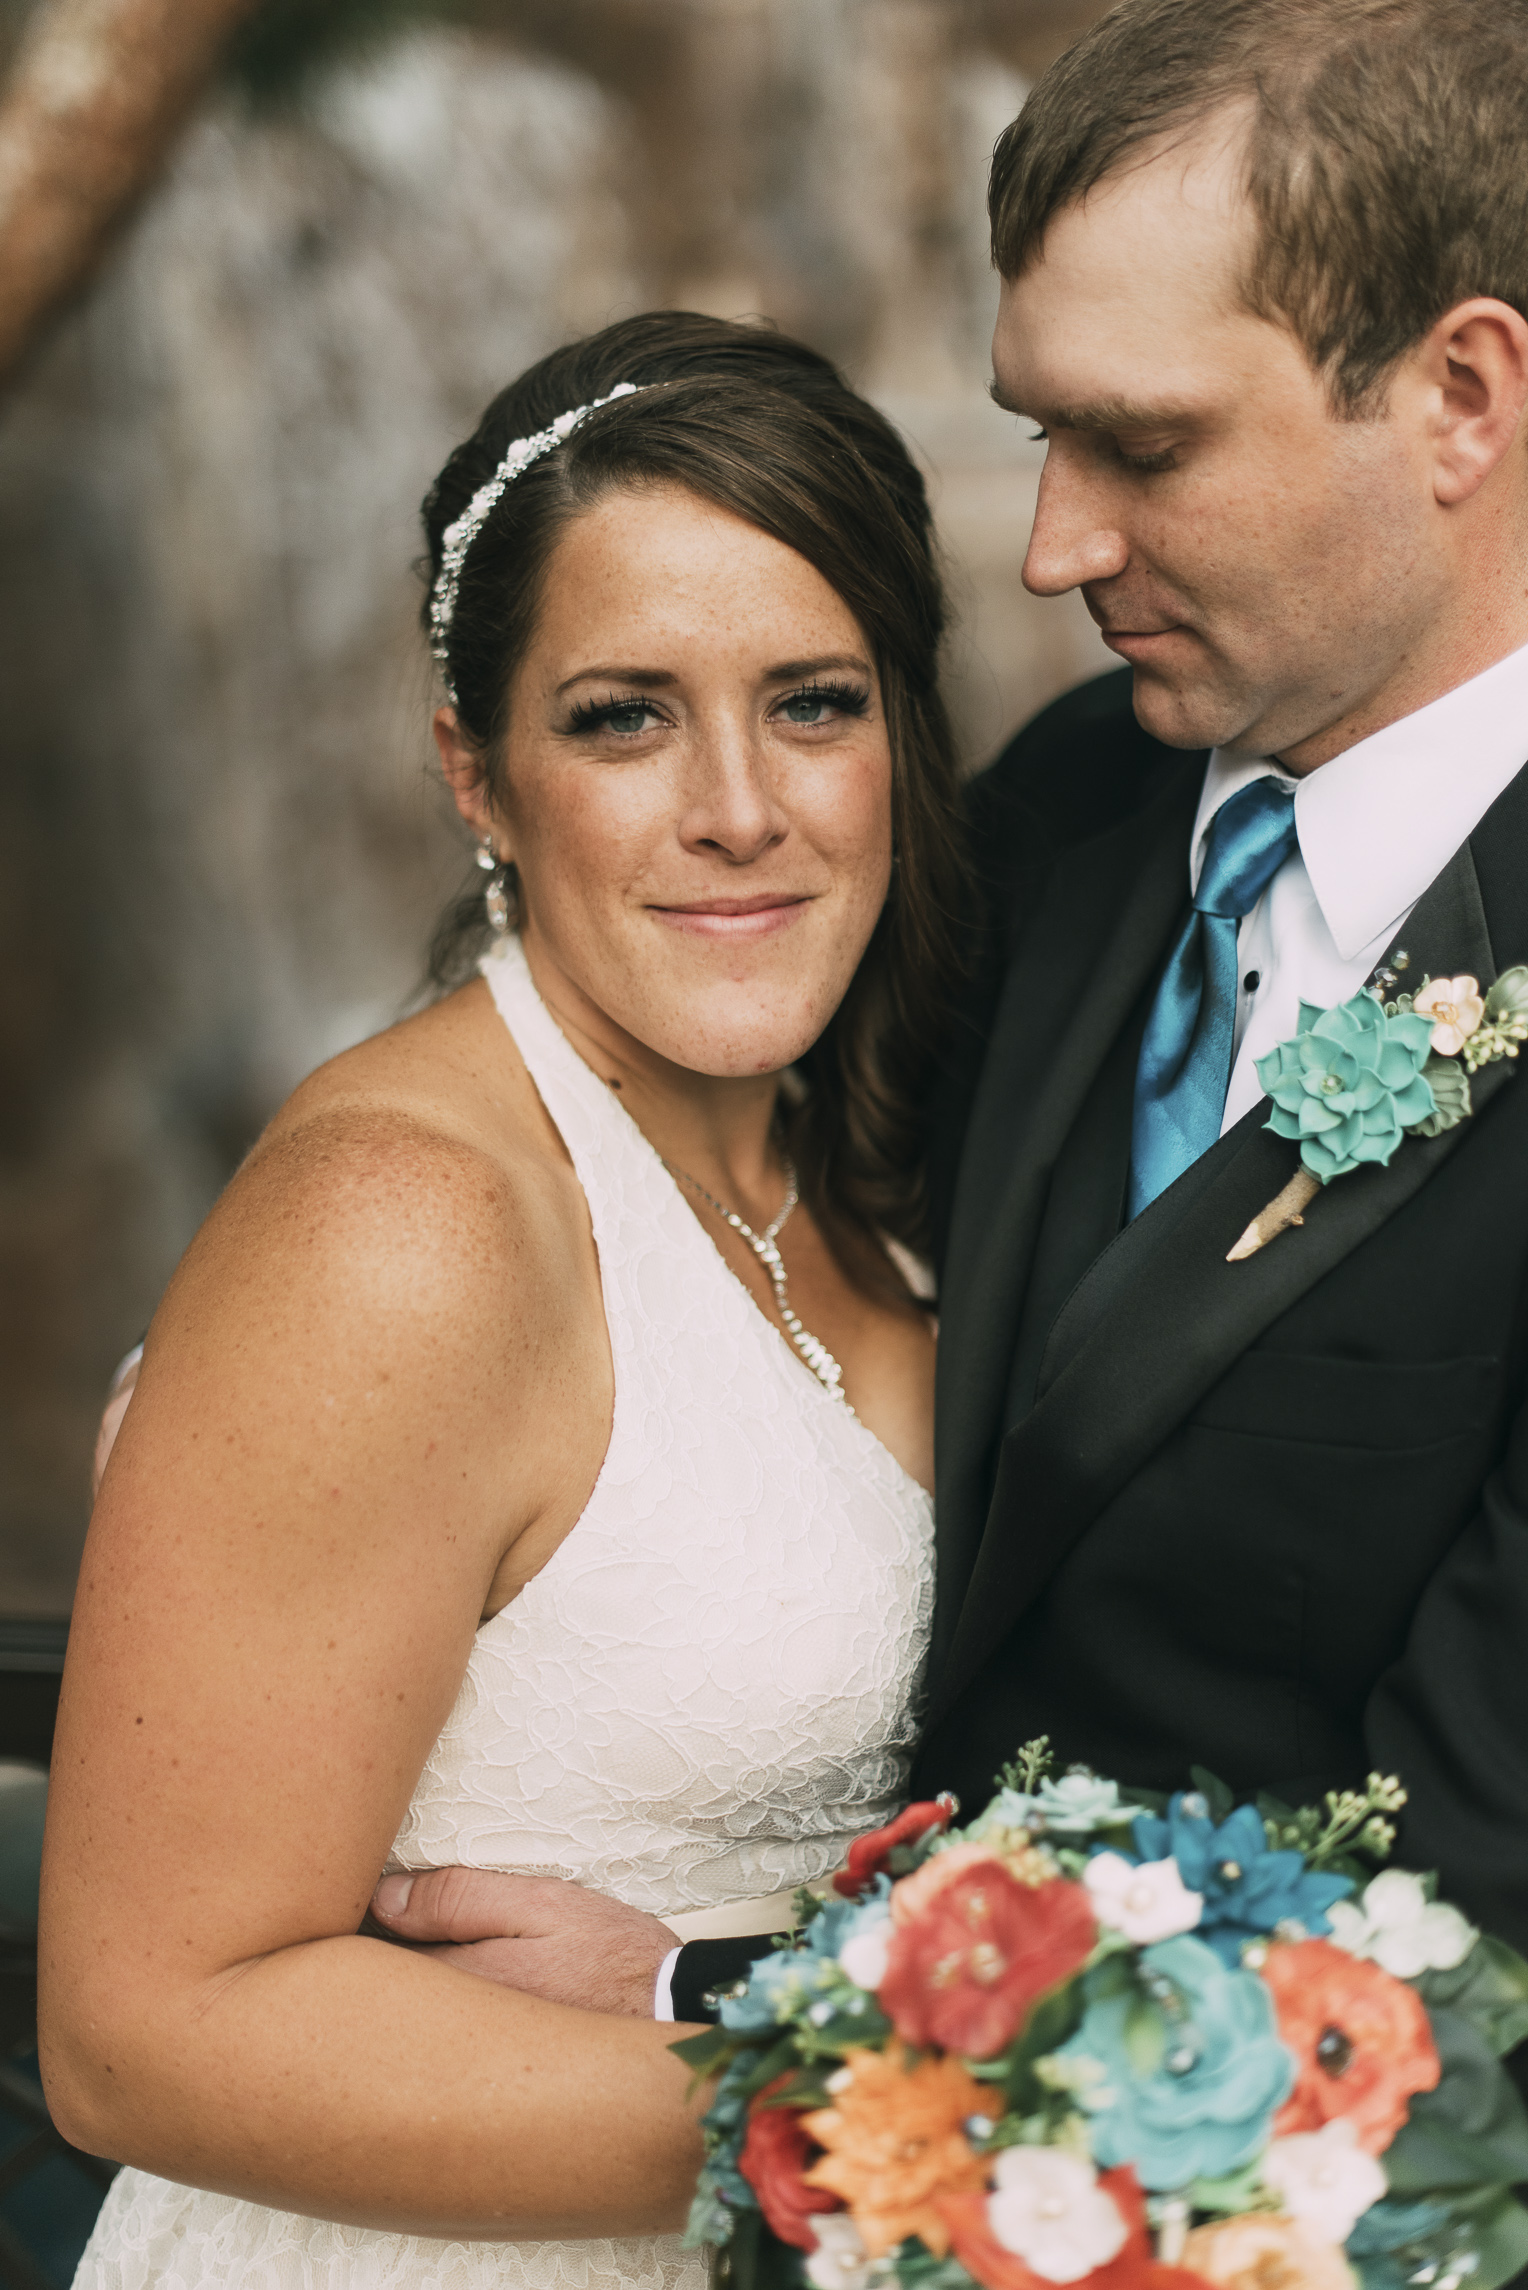 050416MATT & MICHELLE STARK WEDDING - DEBI RAE PHOTOGRAPHY-26.jpg